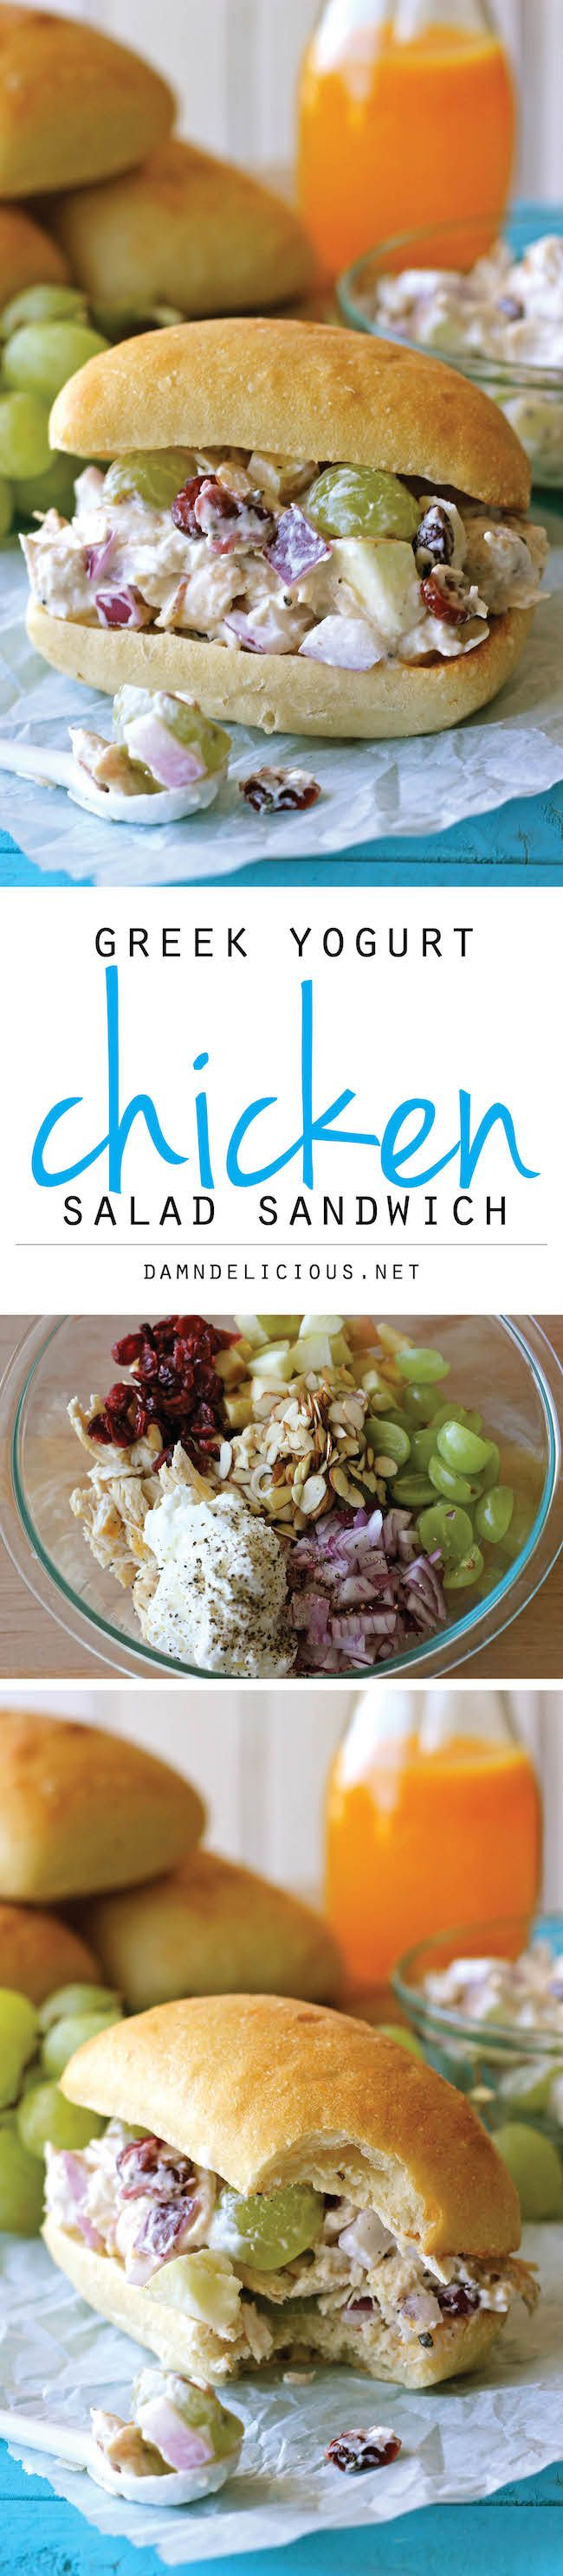 Greek Yogurt Chicken Salad Sandwich. Did I say I LOVE chicken salad??? I'd leave out the onions because I leave out the onions in everything.